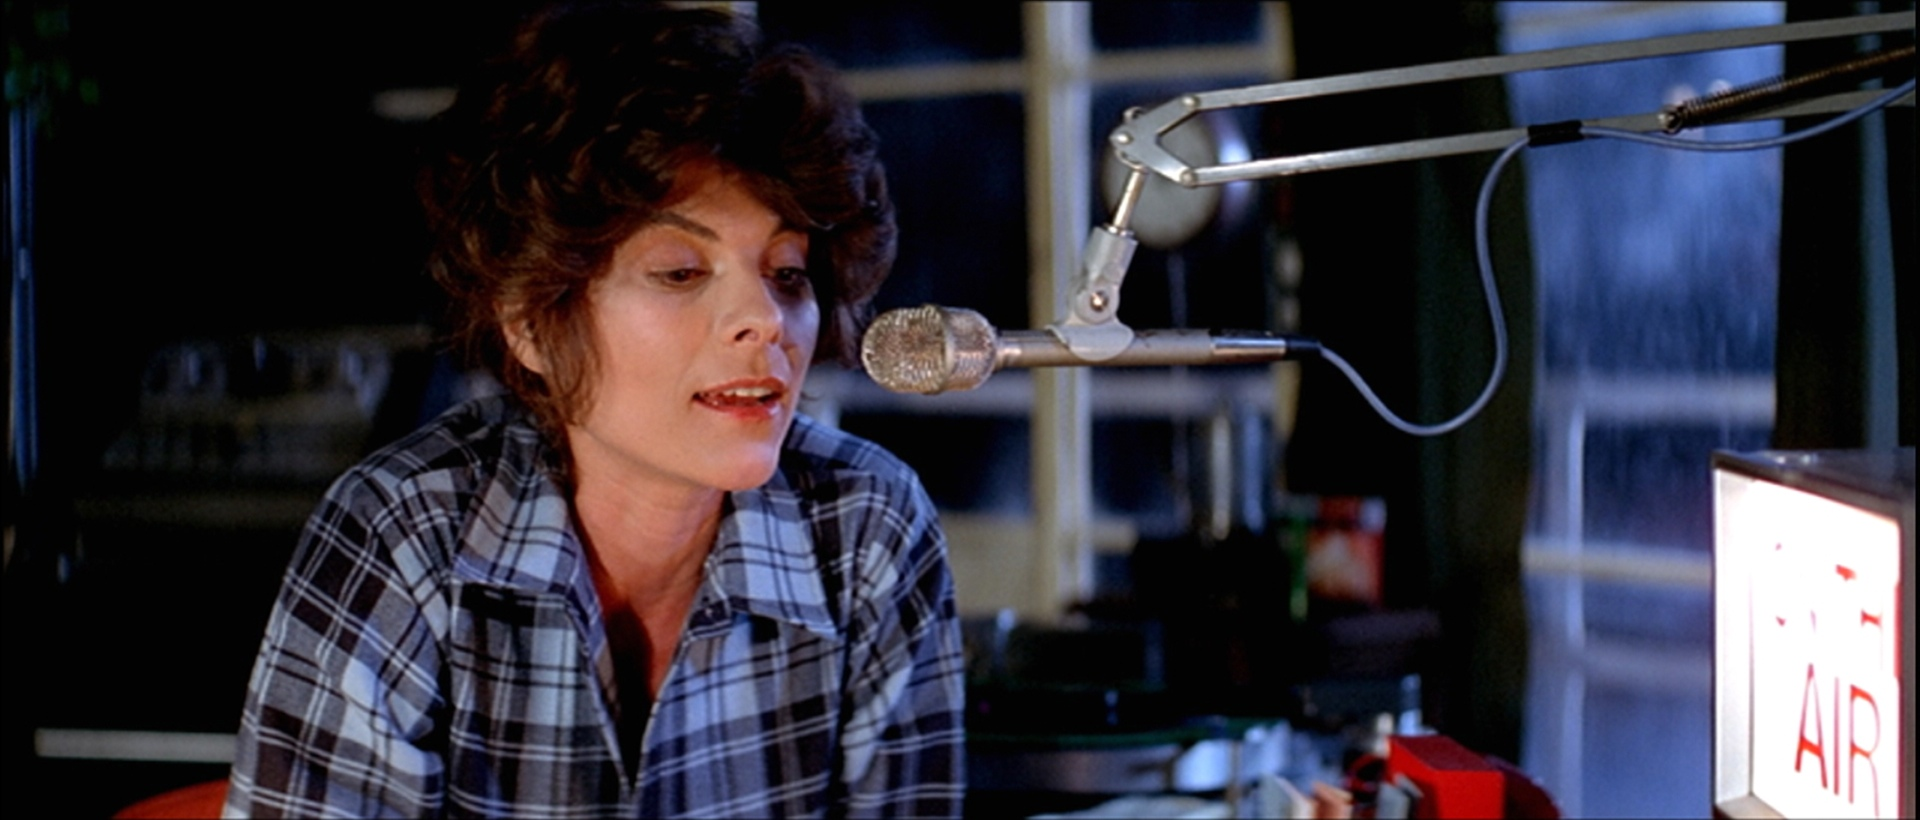 Adrienne Barbeau in The Fog